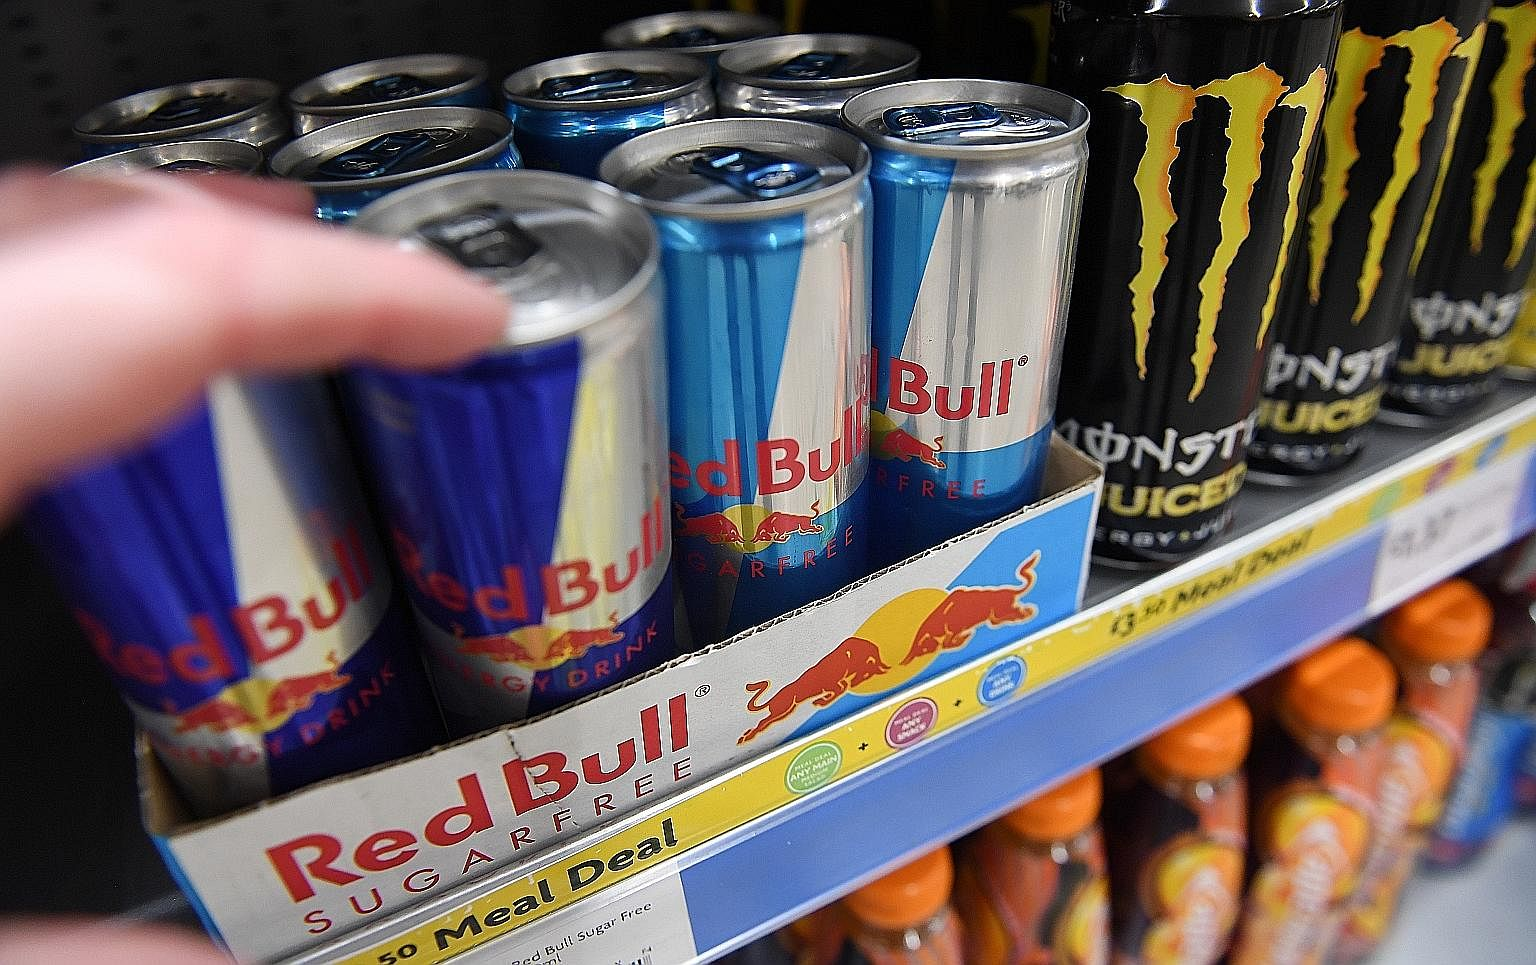 It S High Time To Can Energy Drinks Over Caffeine Sugar Concerns Life News Top Stories The Straits Times